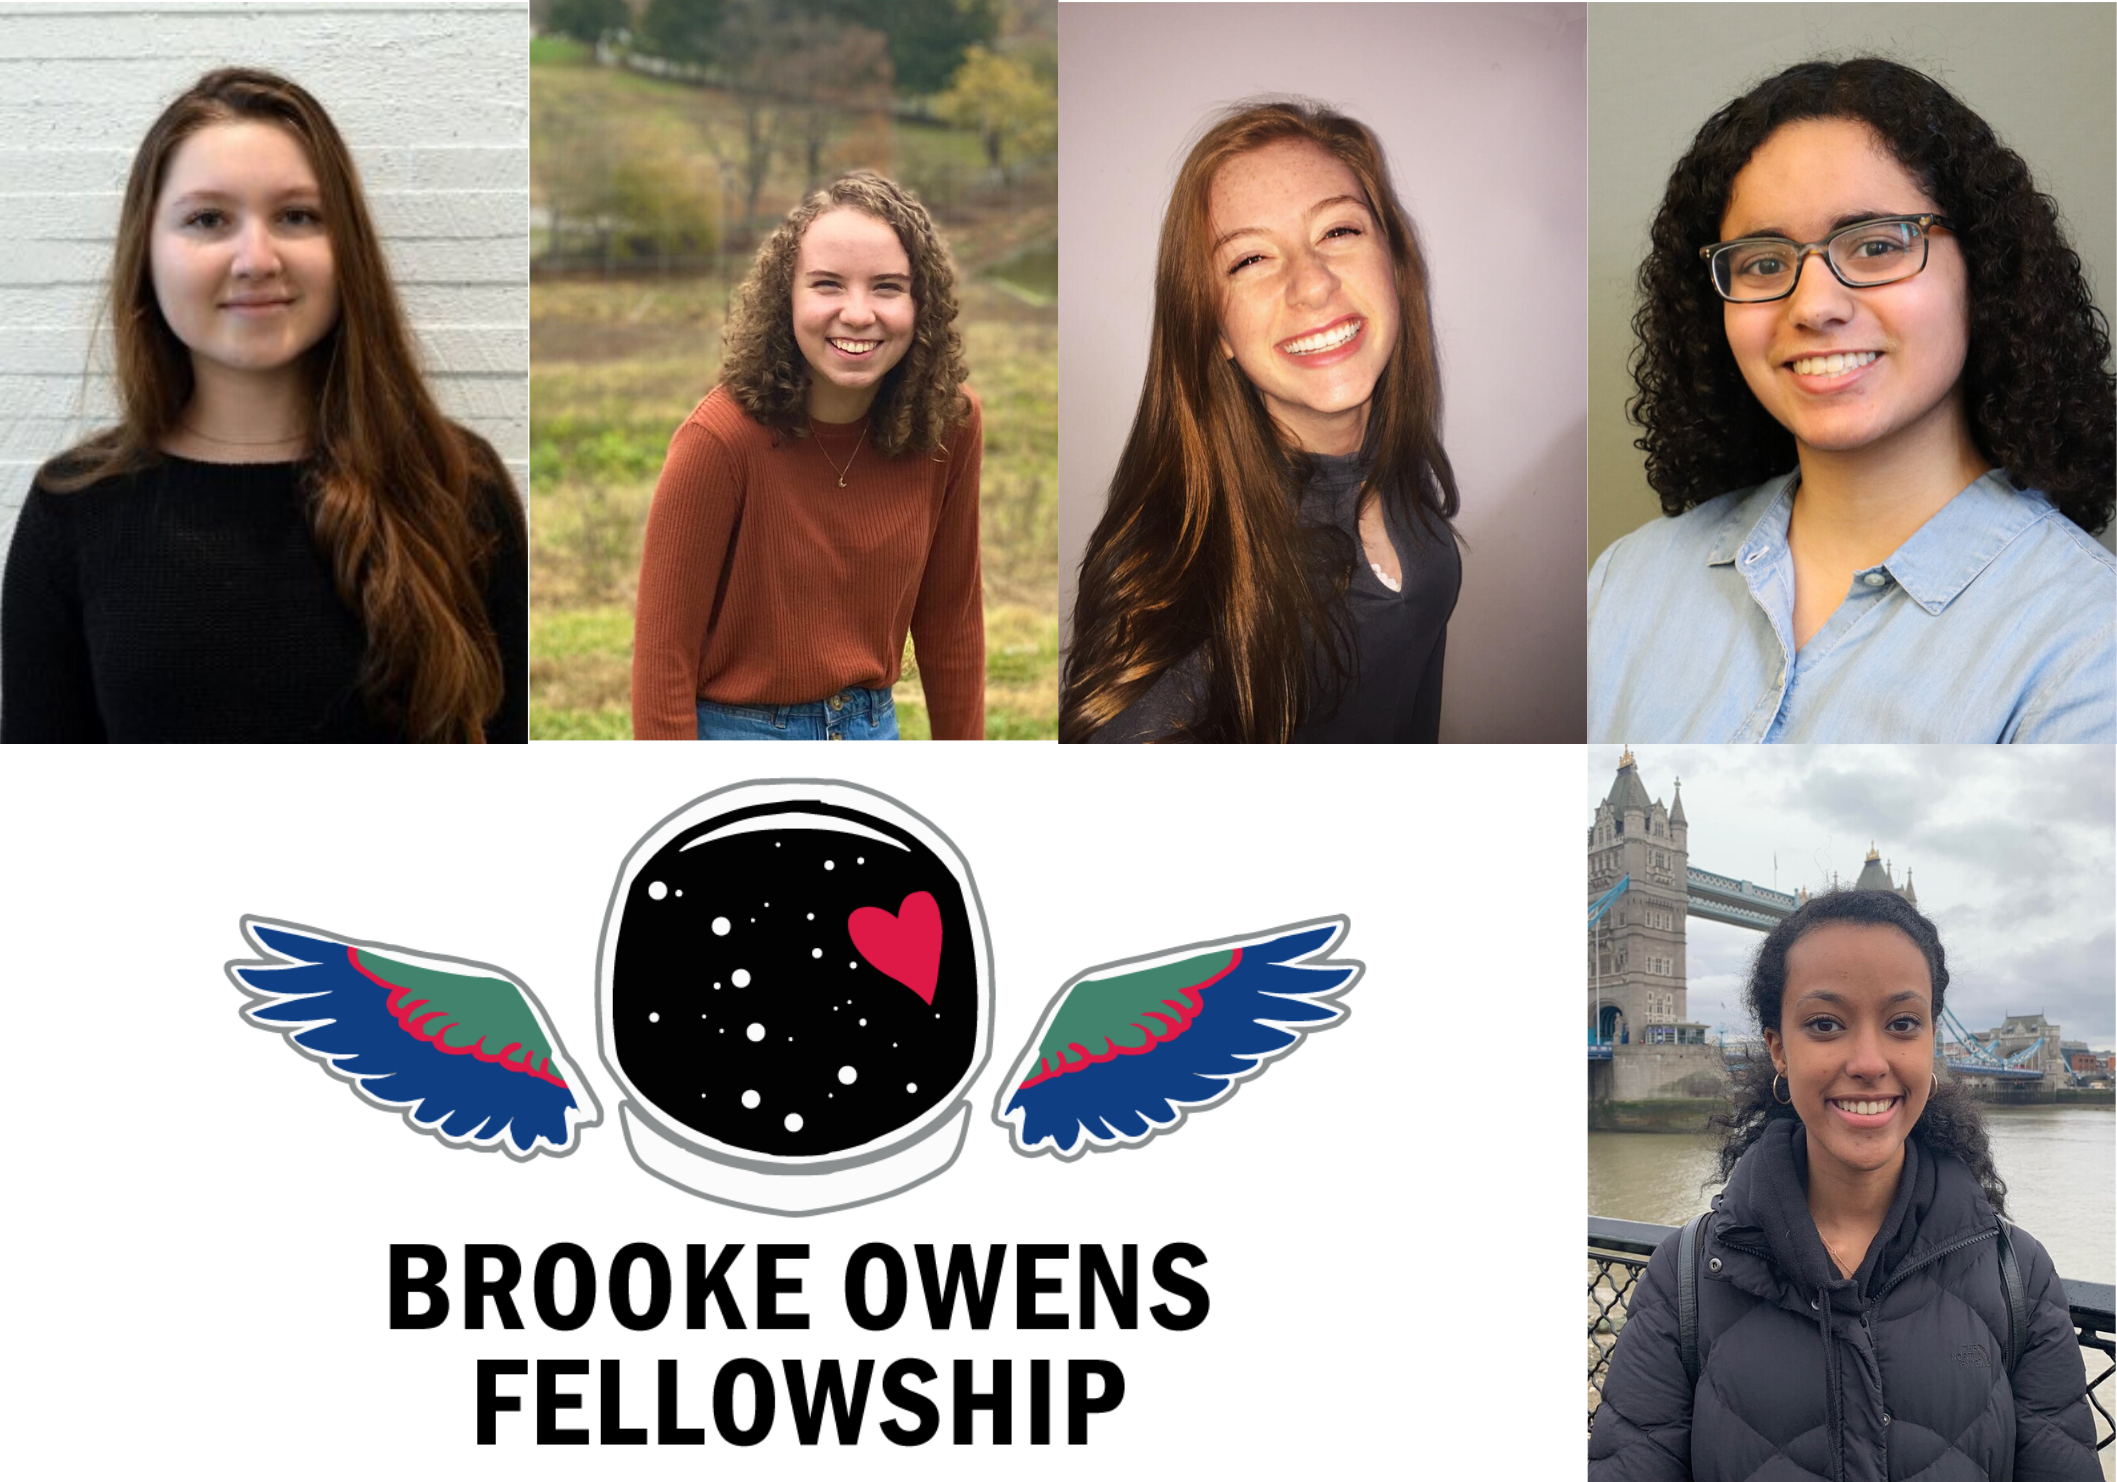 Brooke Owens Fellowship Winners